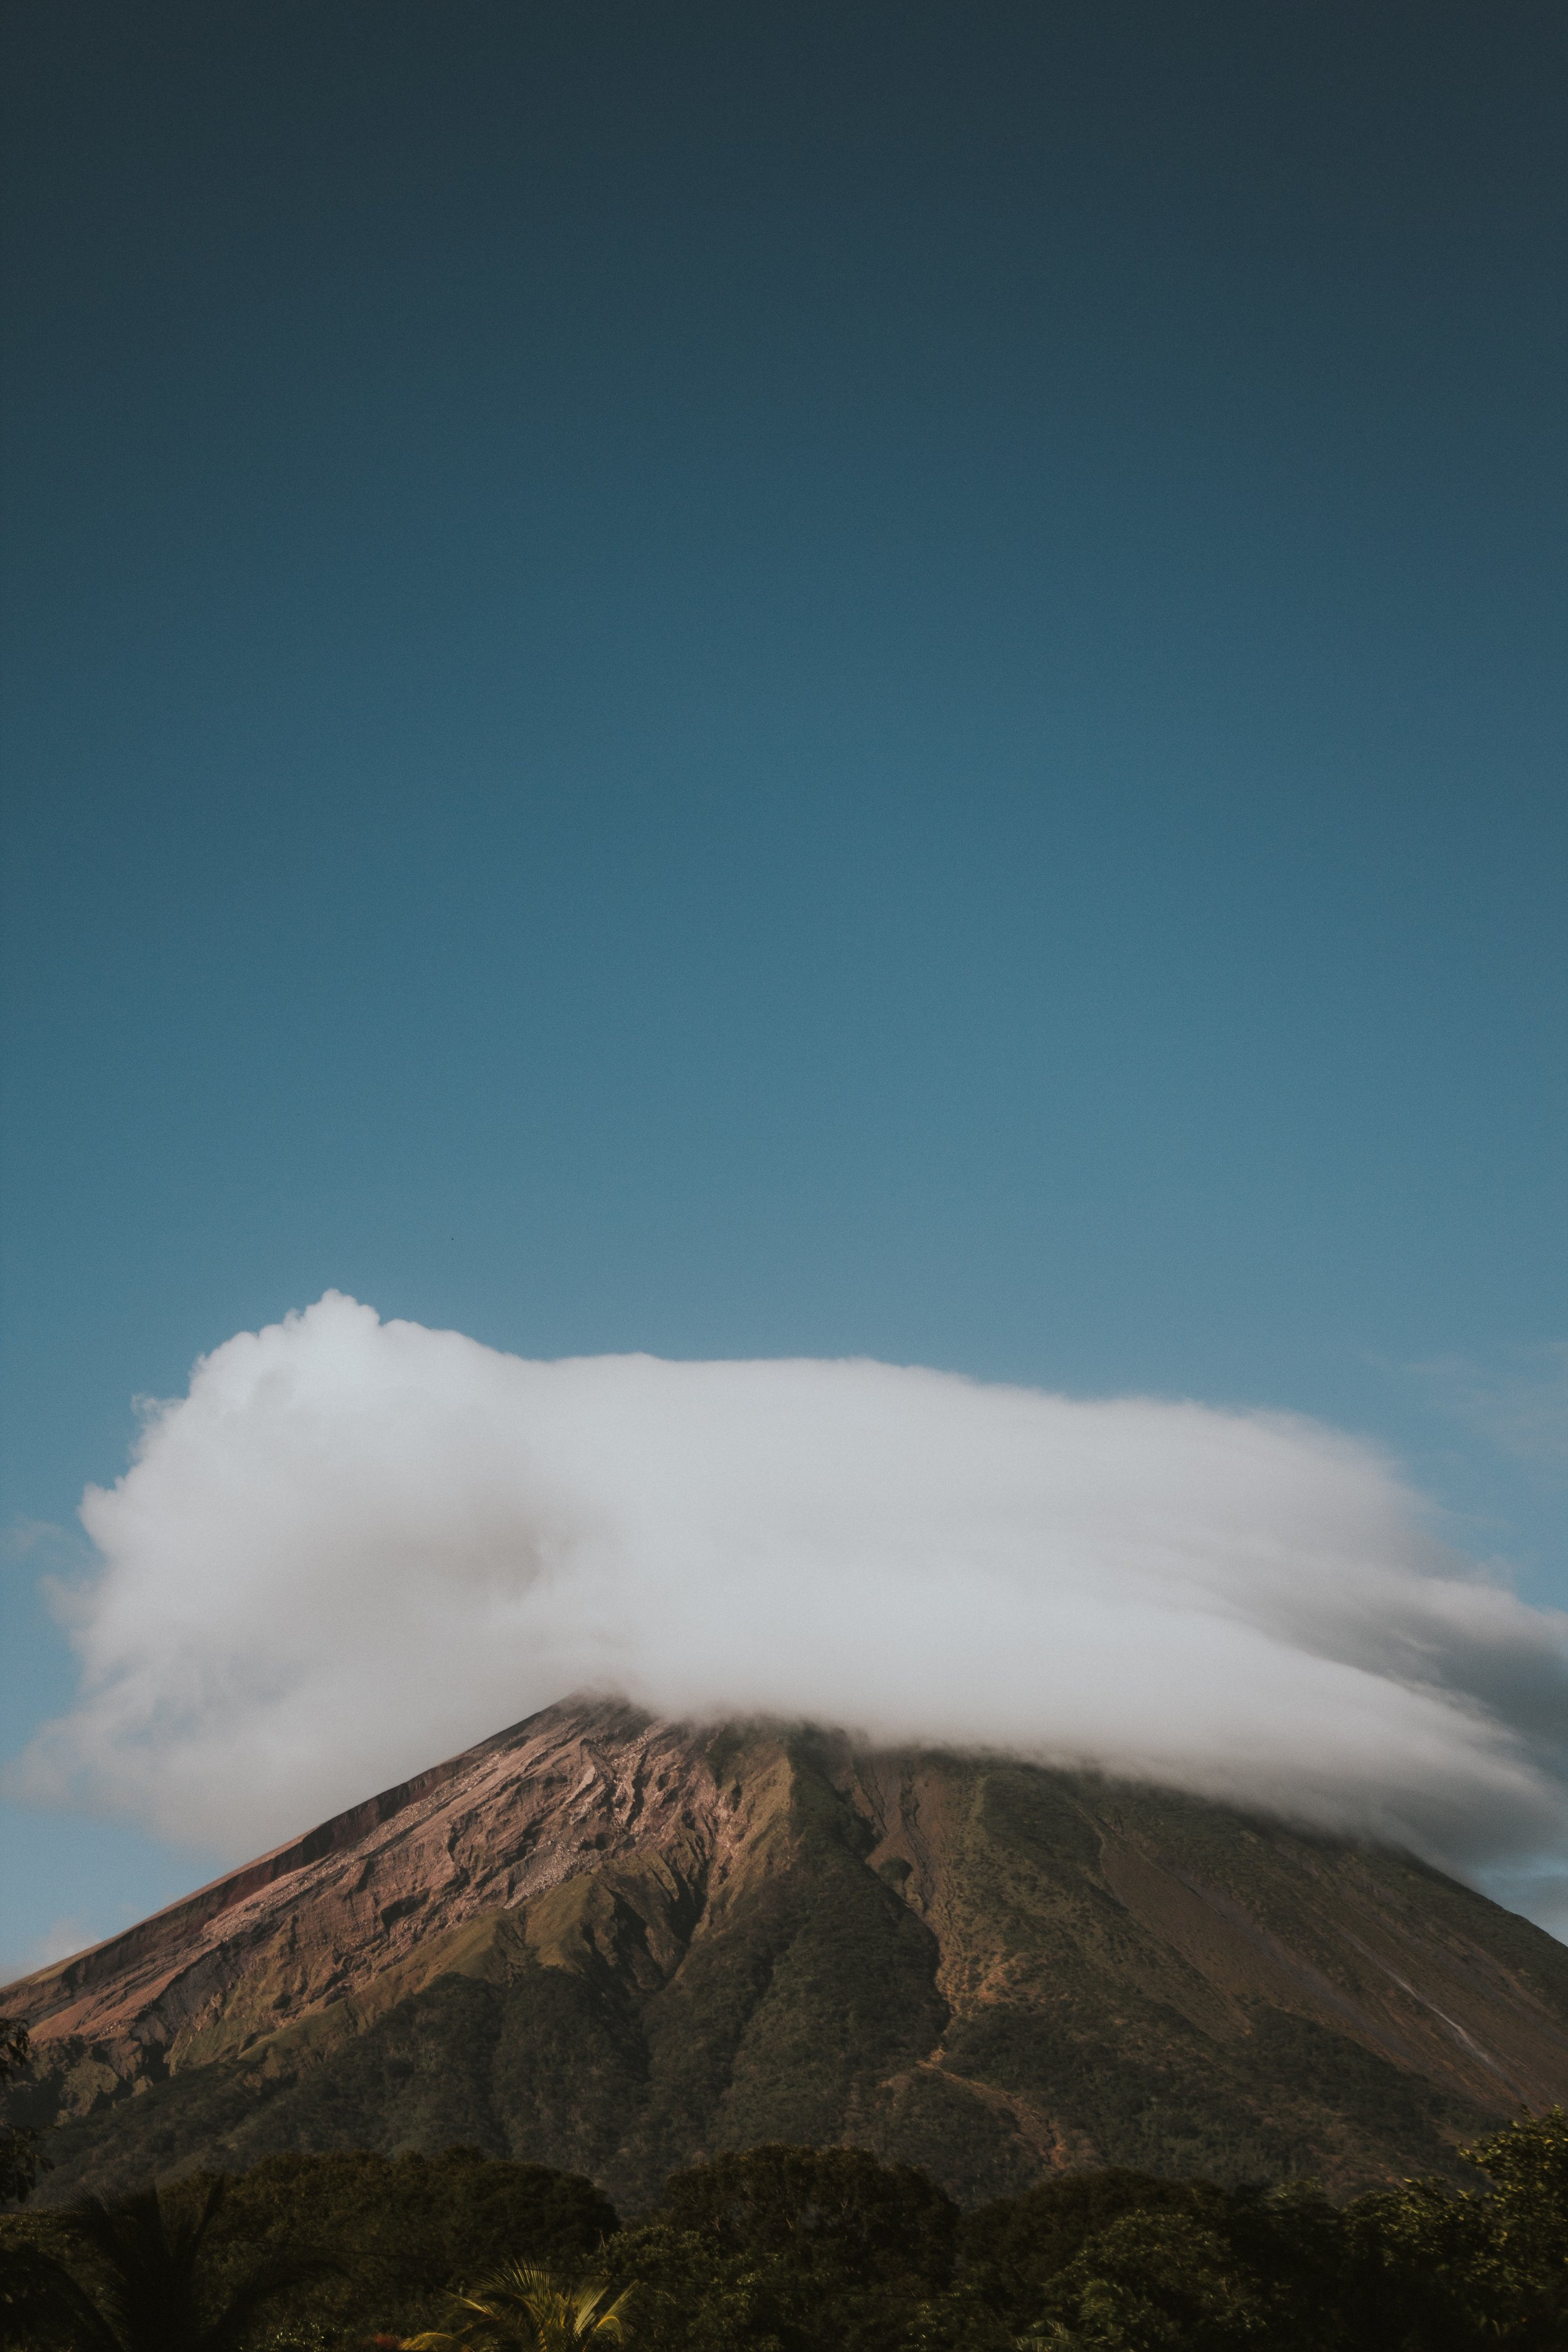 volcano shrouded in white clouds against a blue sky background